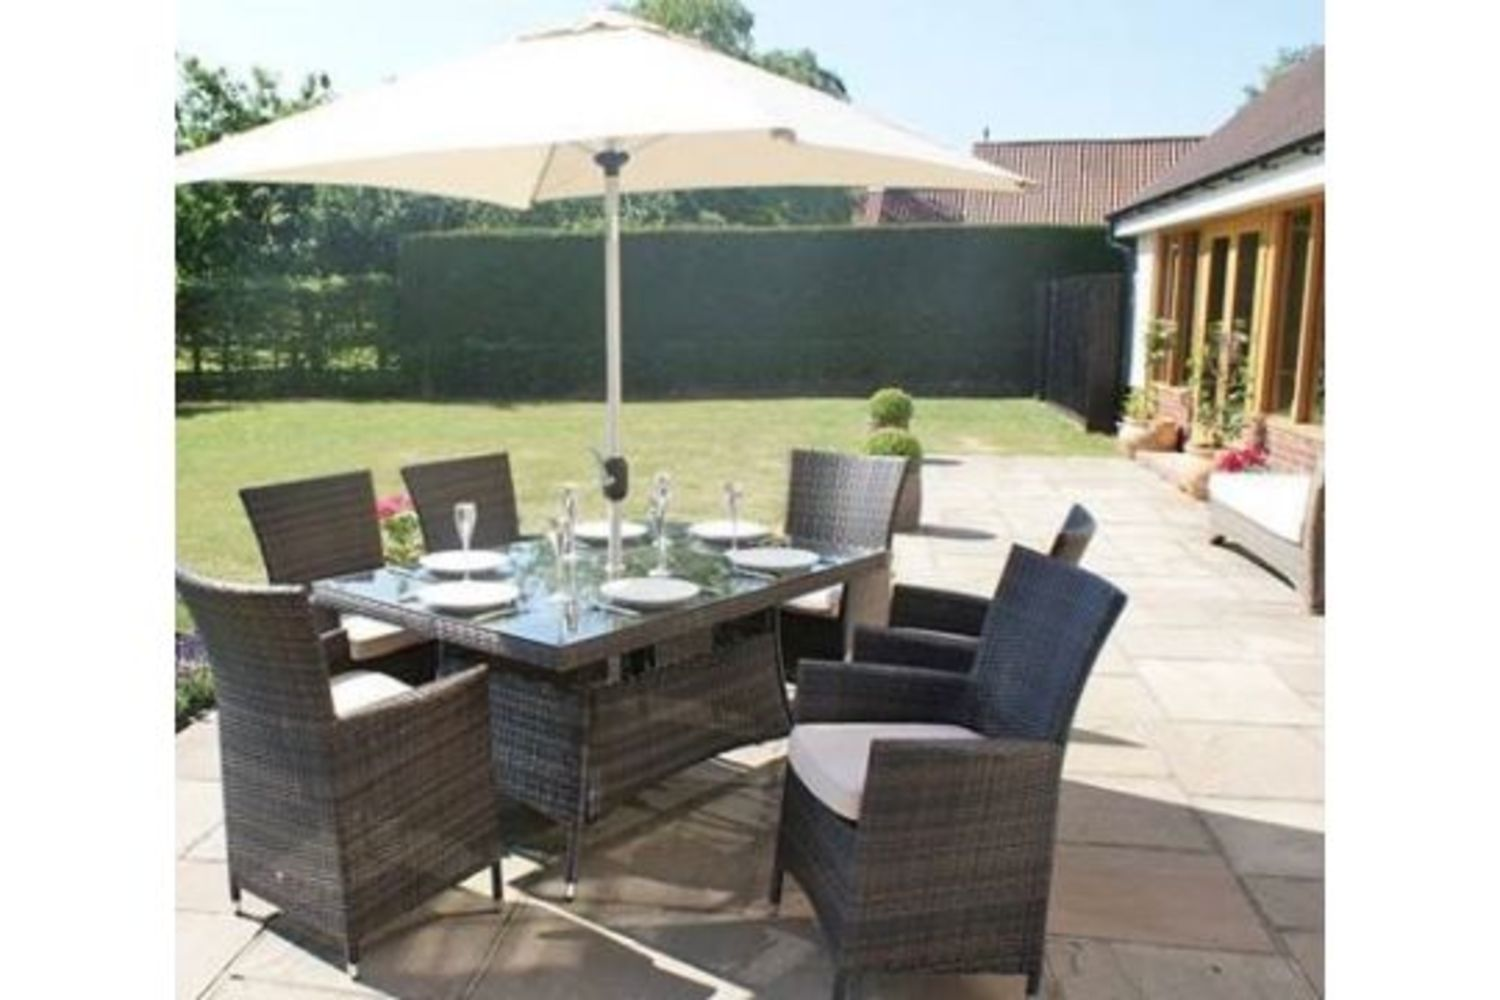 Brand New Rattan Garden Furniture: Including Dining Sets, Sofa Sets, Sun Loungers and More